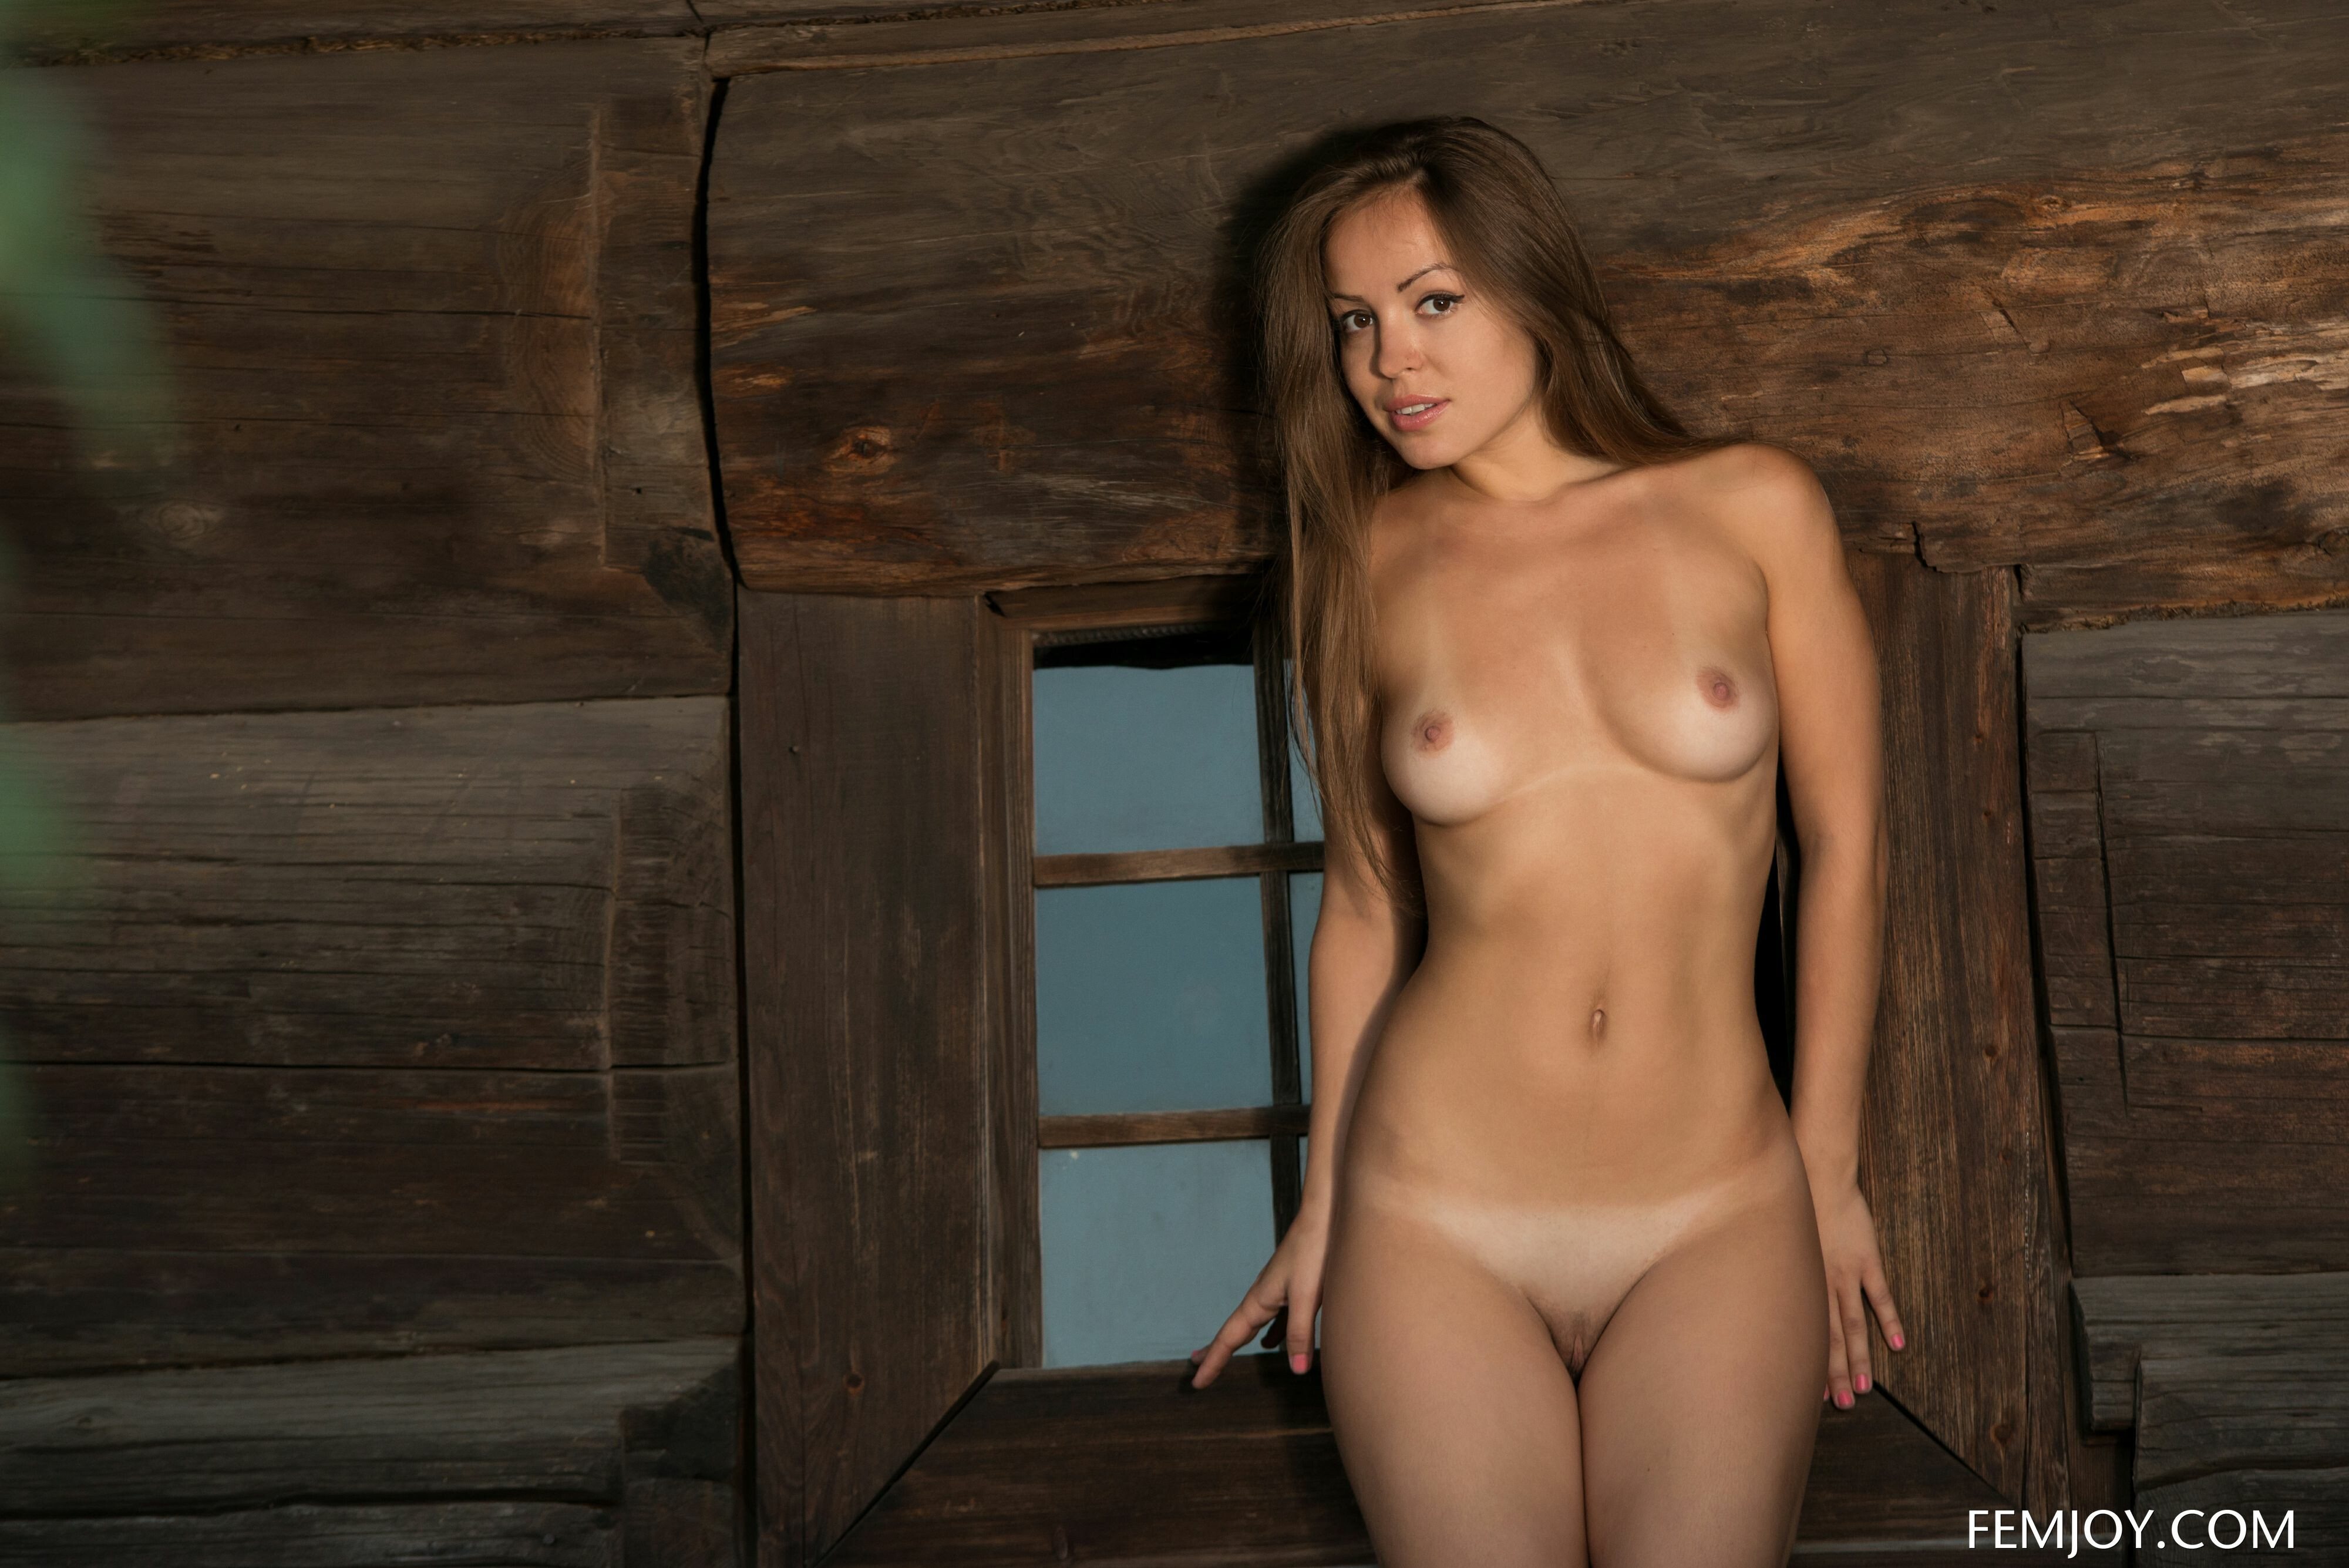 nude-girls-with-tan-lines-mix-77